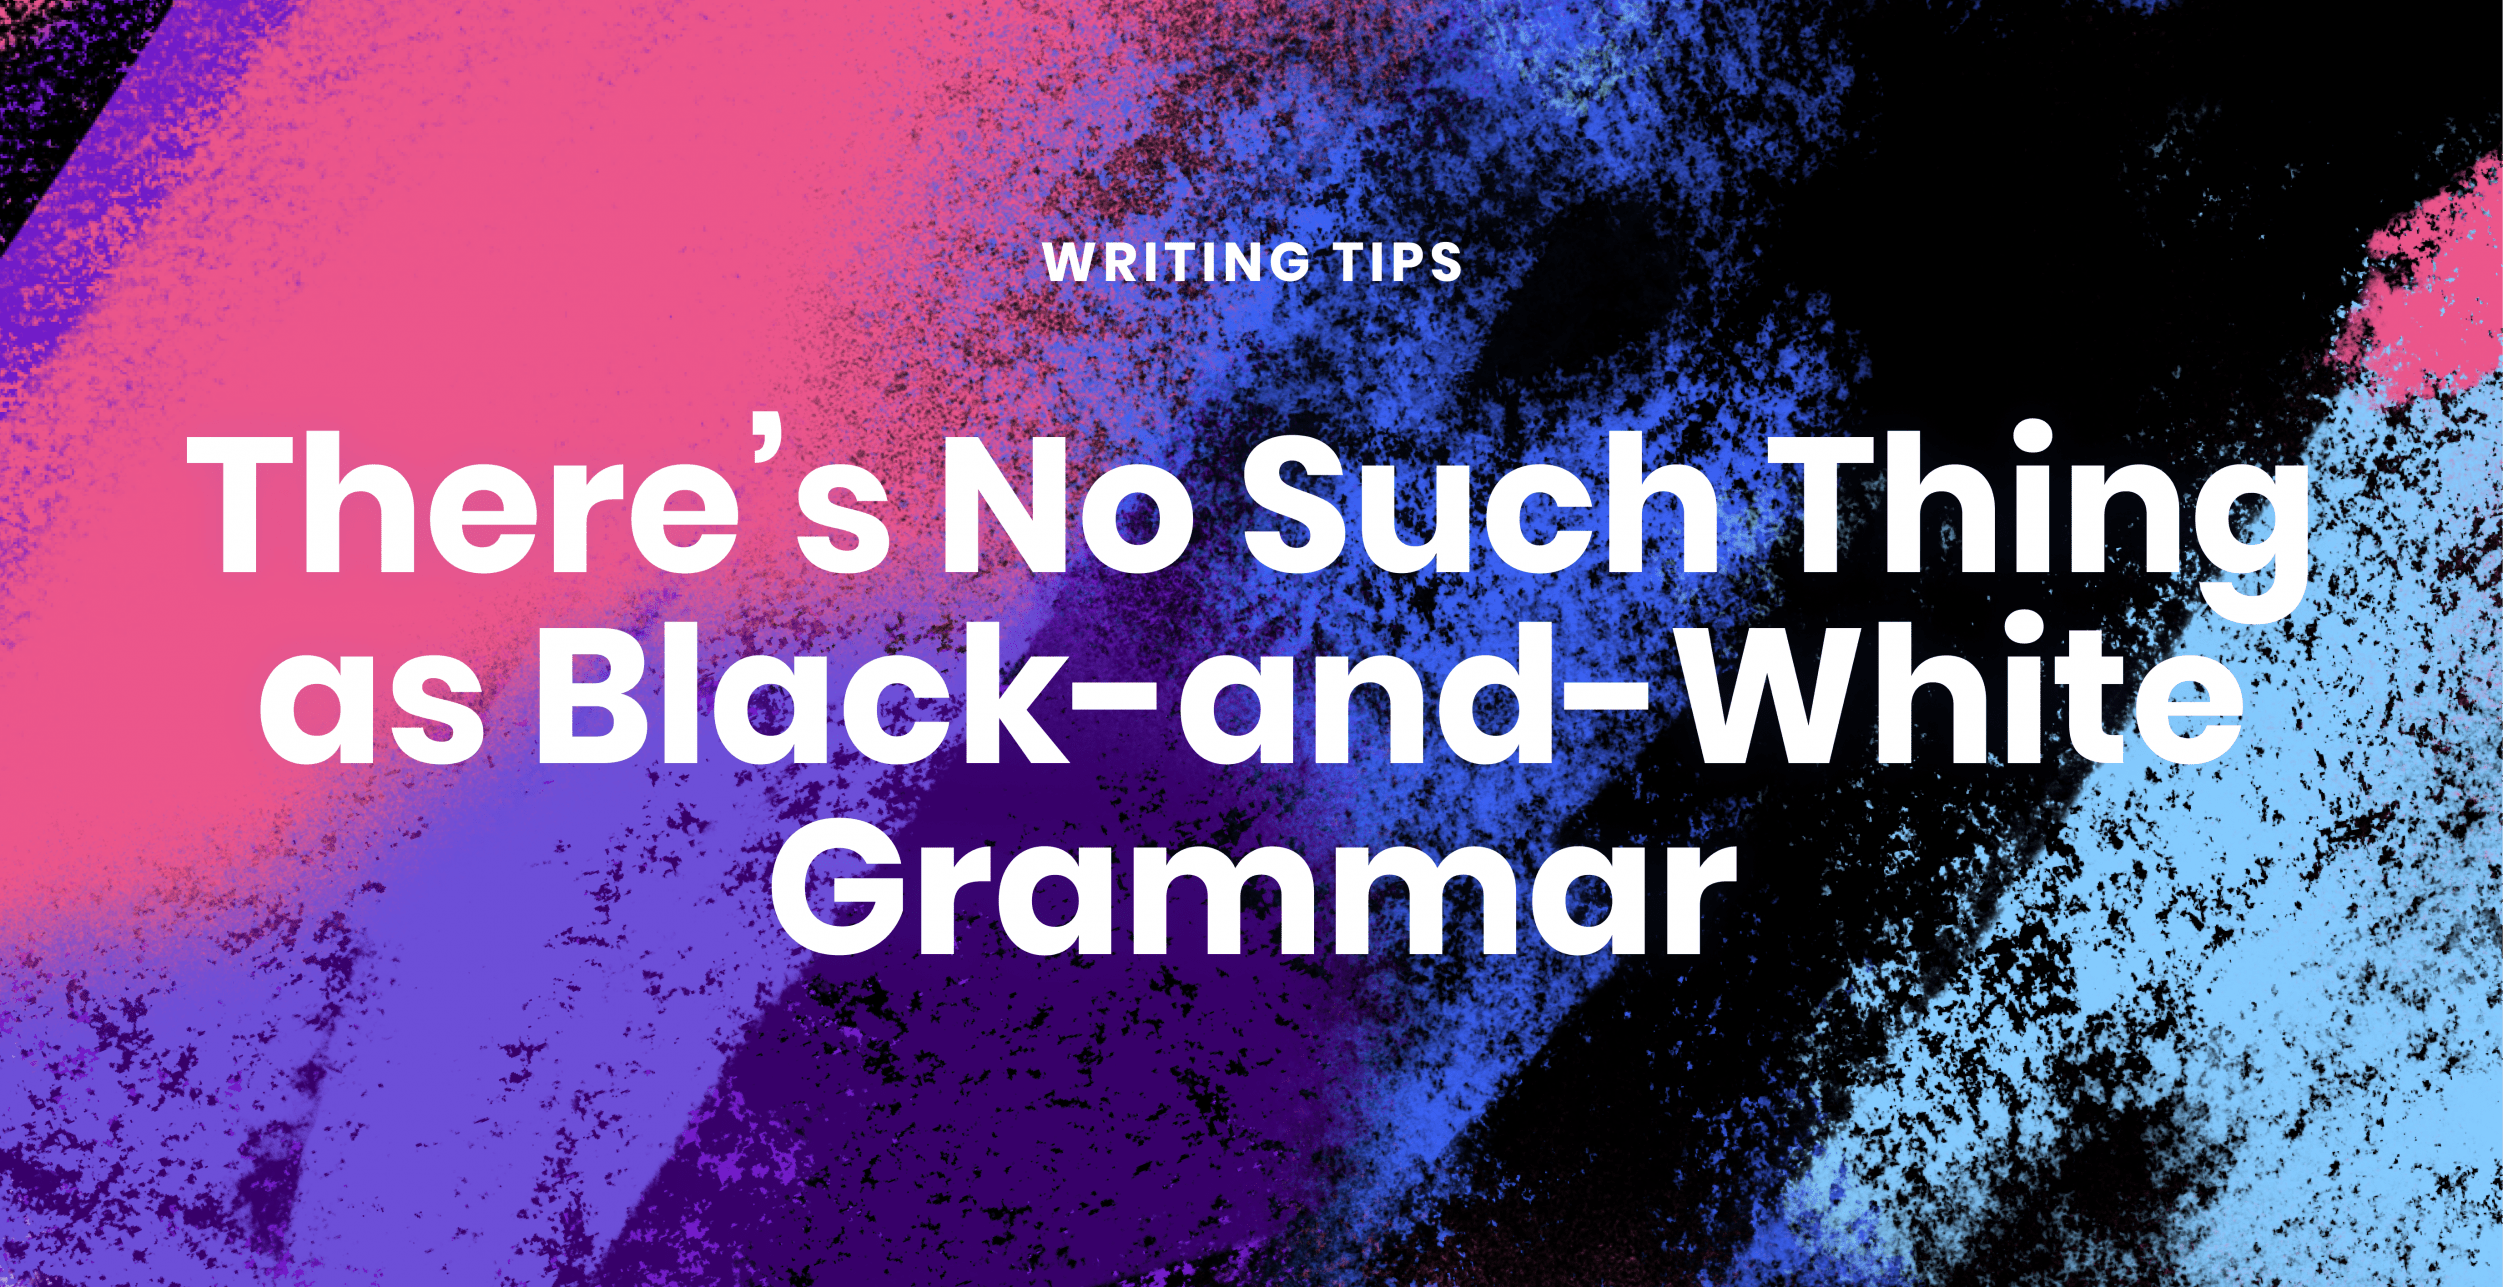 There's no such thing as black-and-white grammar